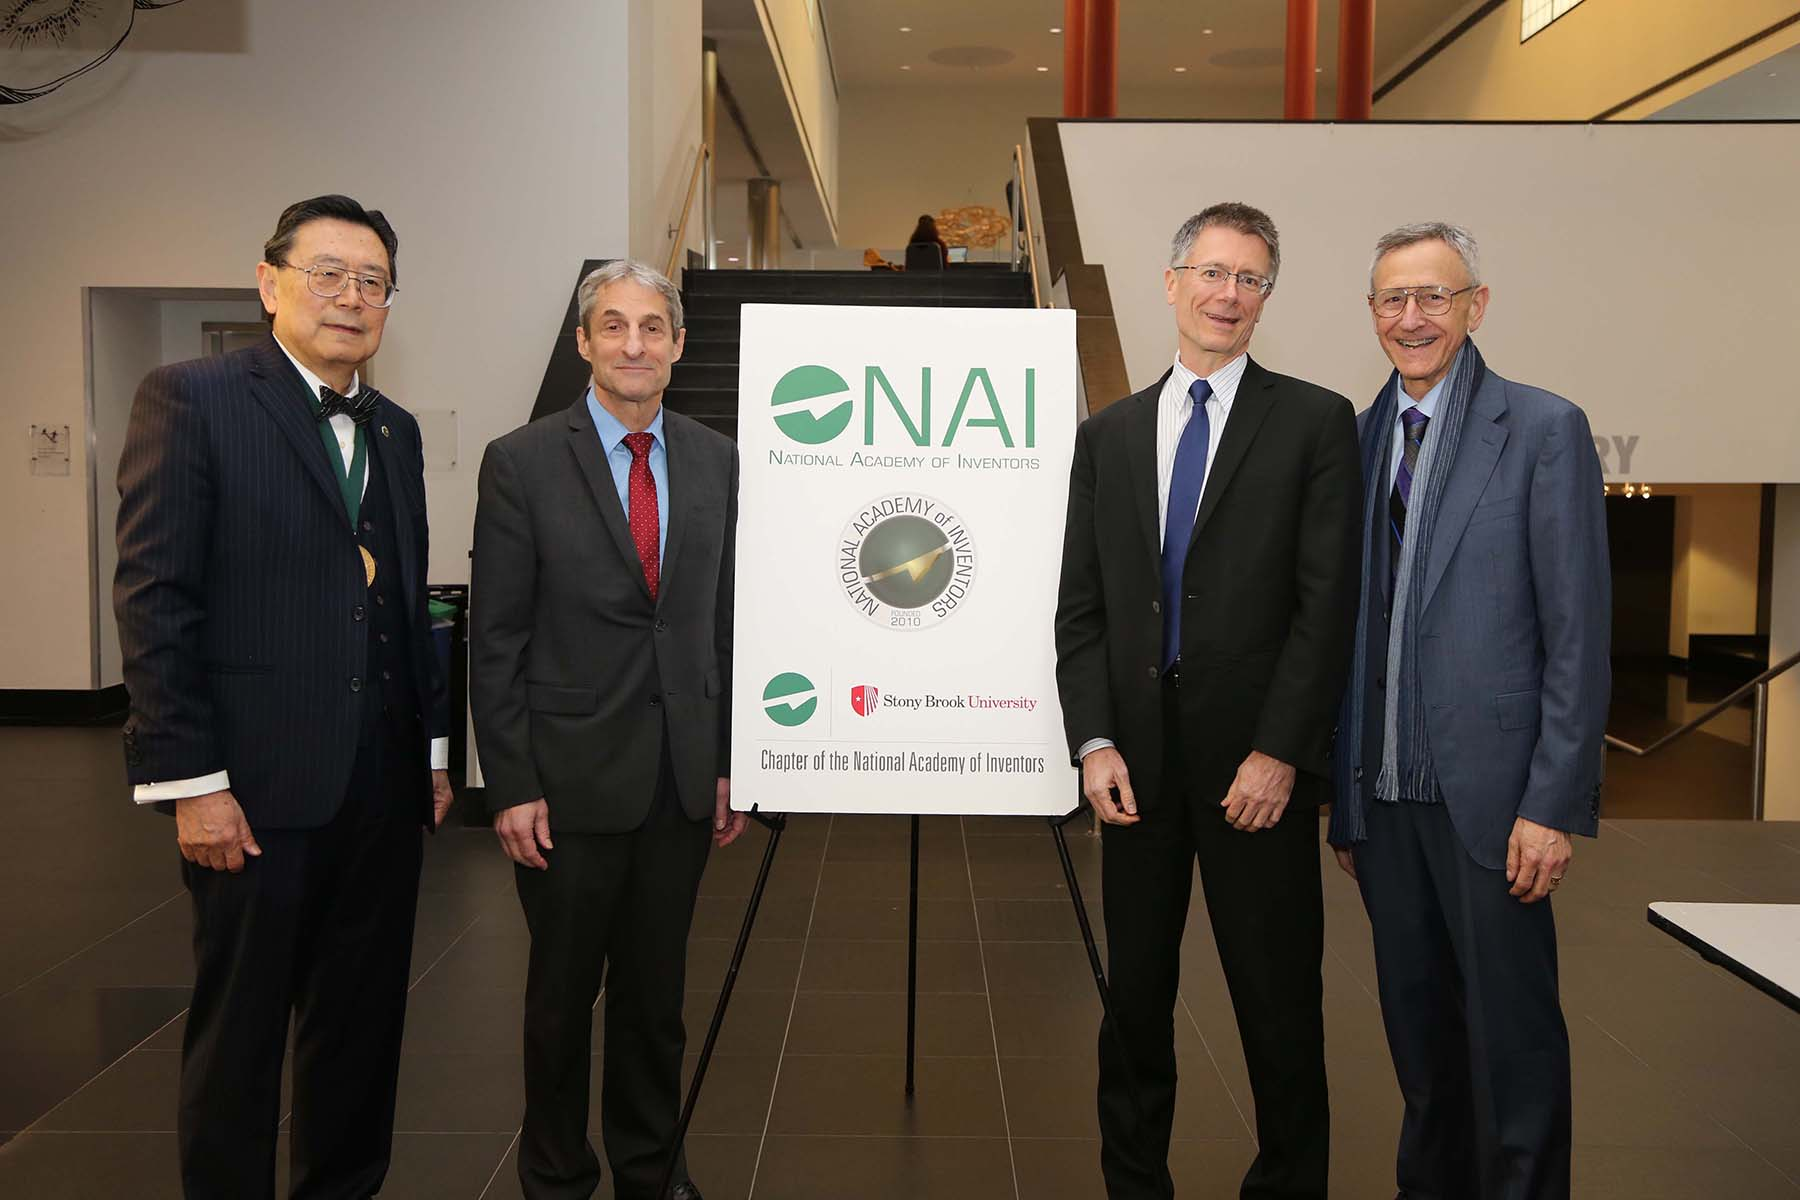 Left to right: Drs. Iwao Ojima, President NAI-SB; Richard Reeder, Vice President for Research; Peter Donnelly, Executive Director, NAI-SBU; and Kenneth Kaushansky, Dean, School of Medicine.